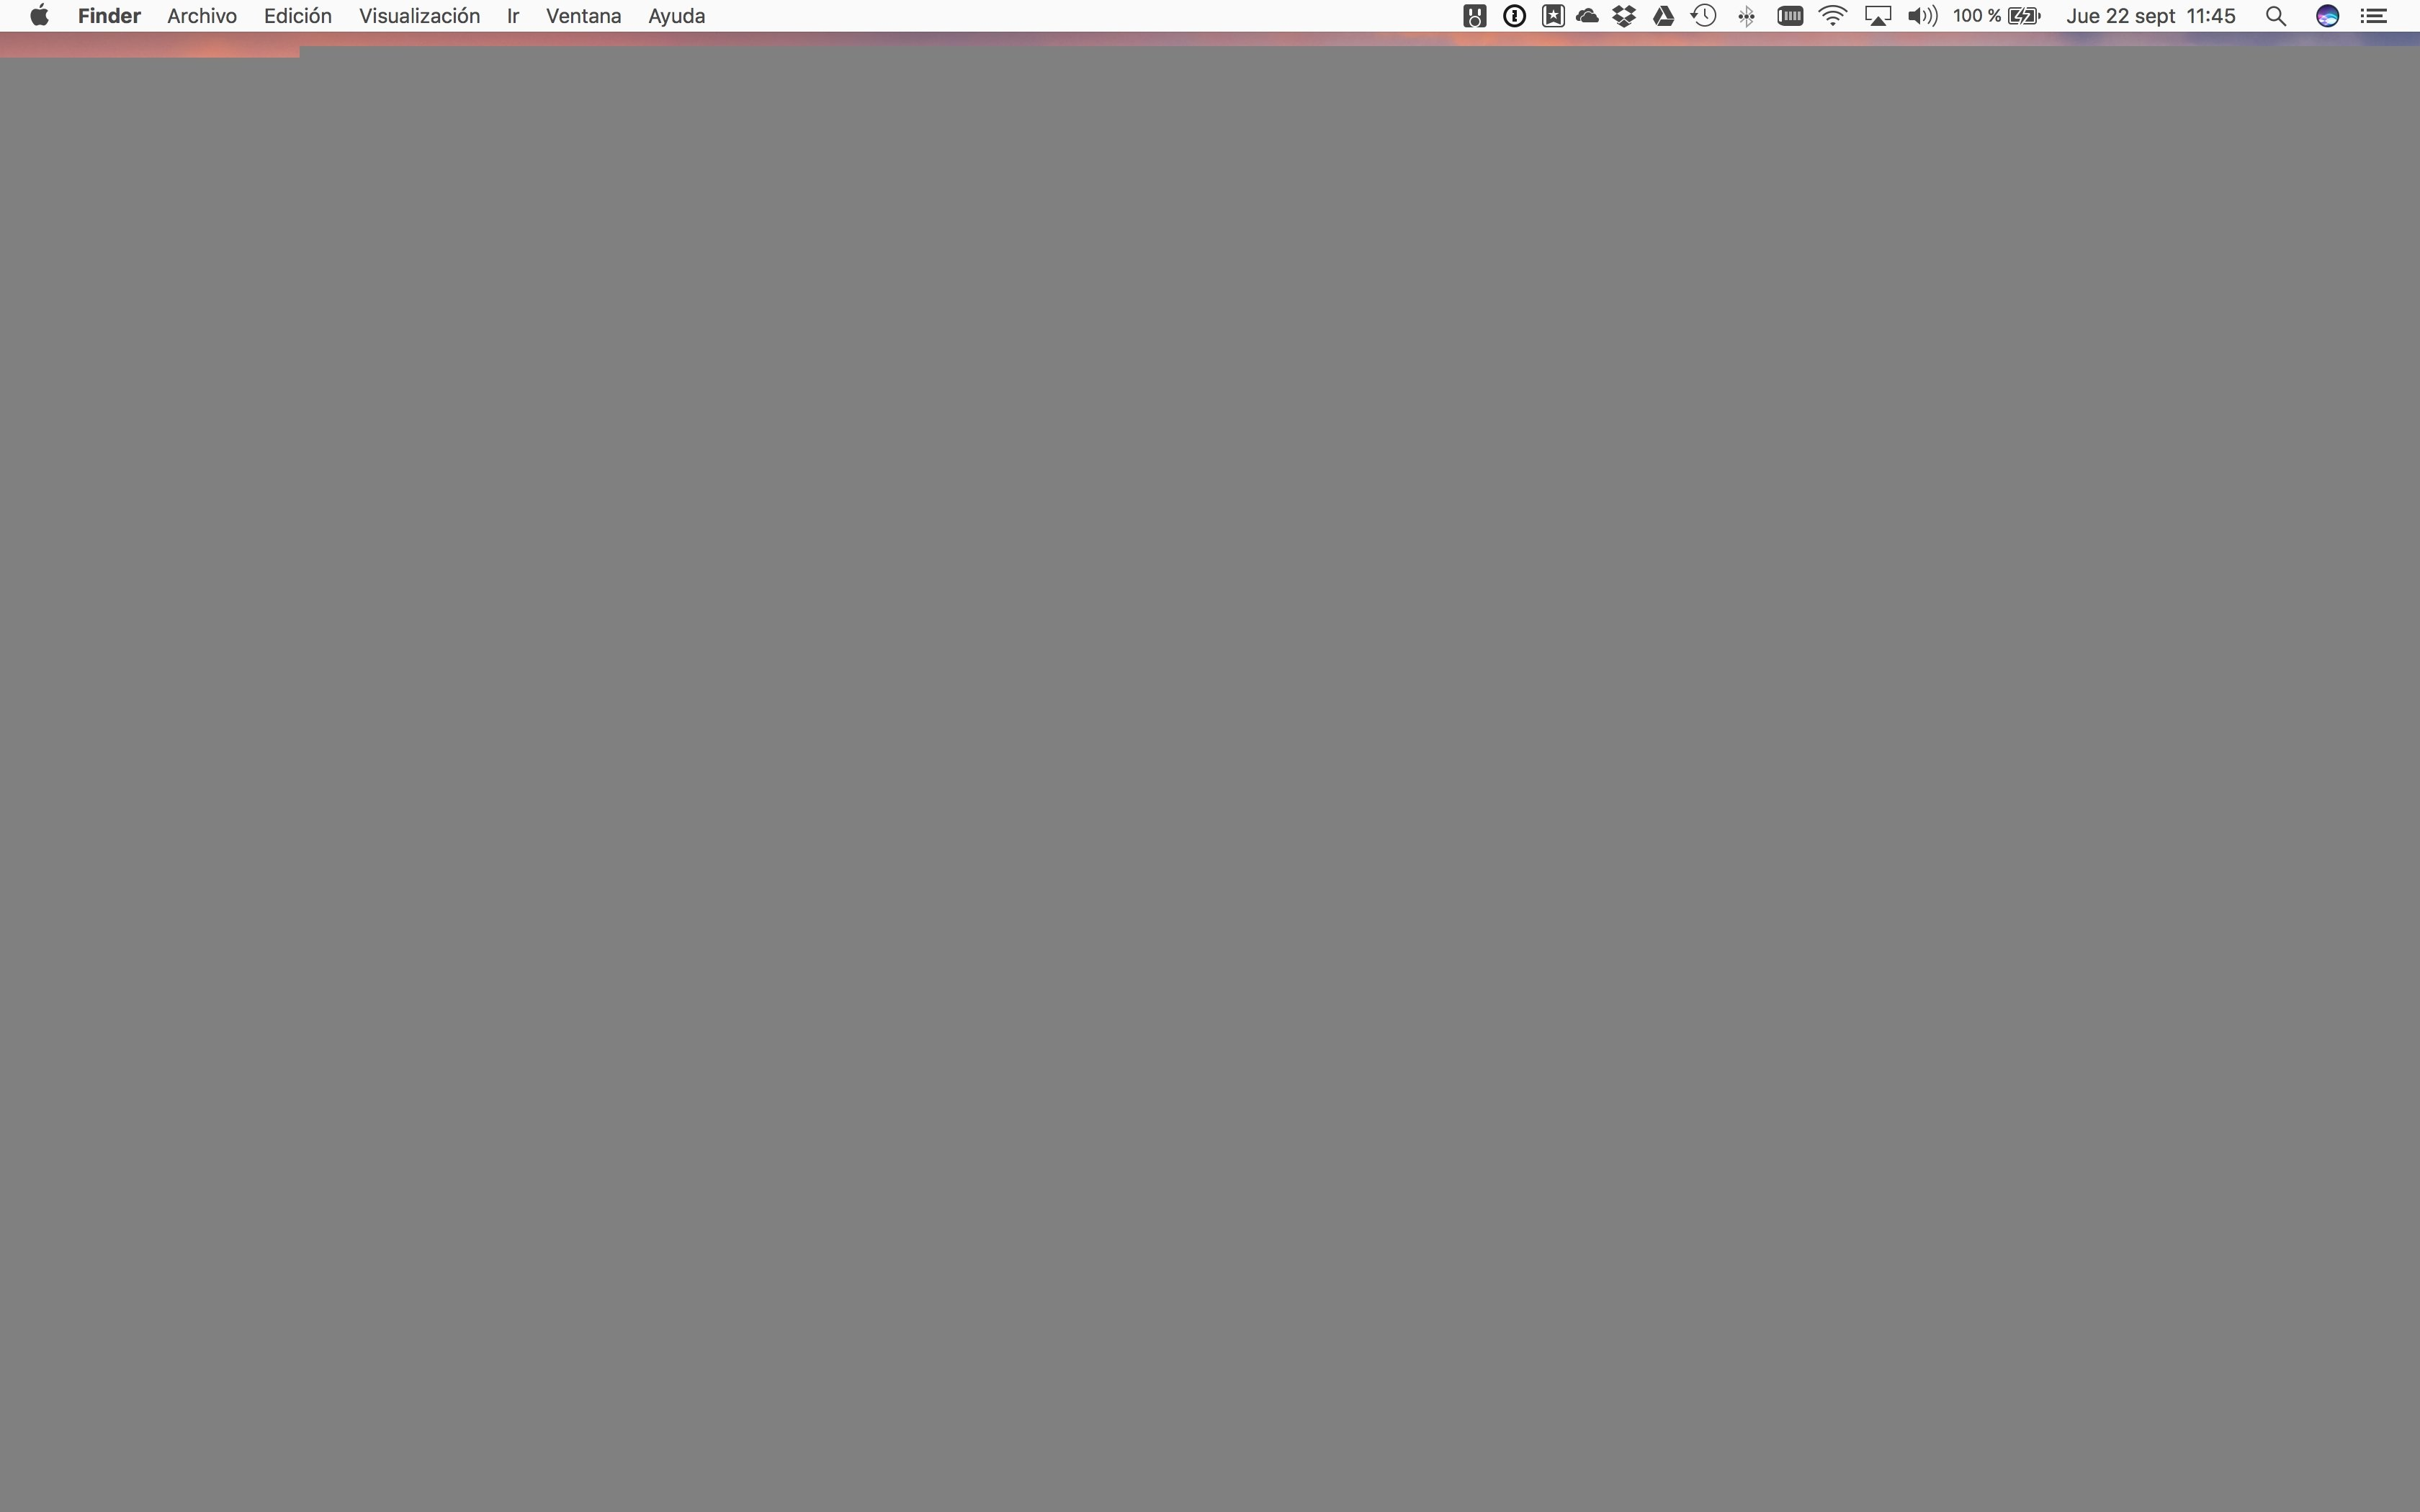 open office mac os x 104 11 download